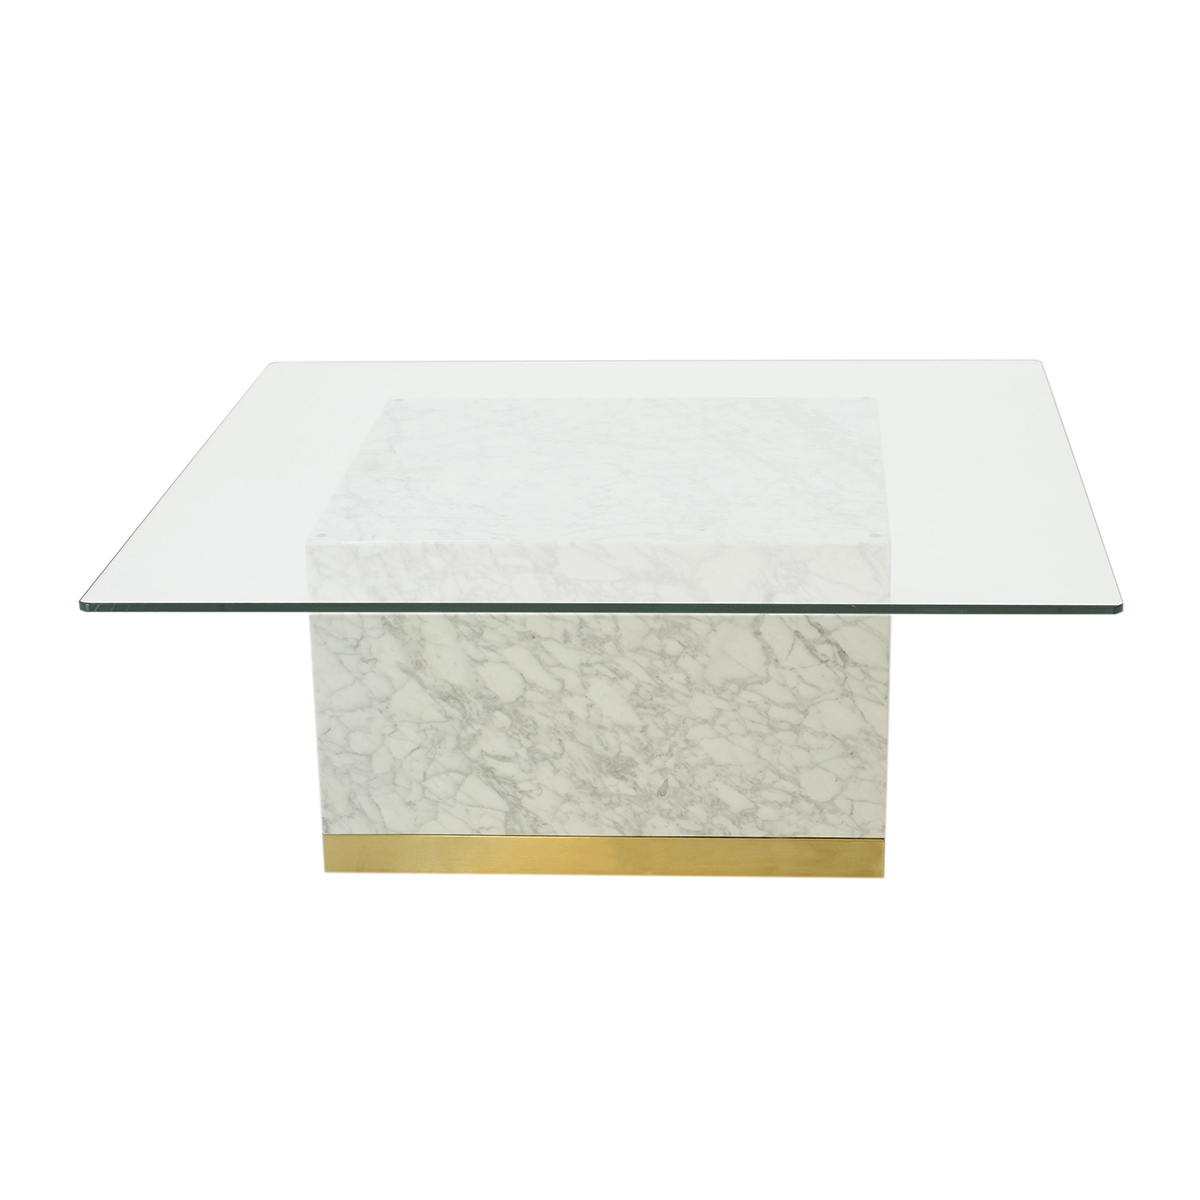 Quebec Coffee Table – Vit Carrara Marmor